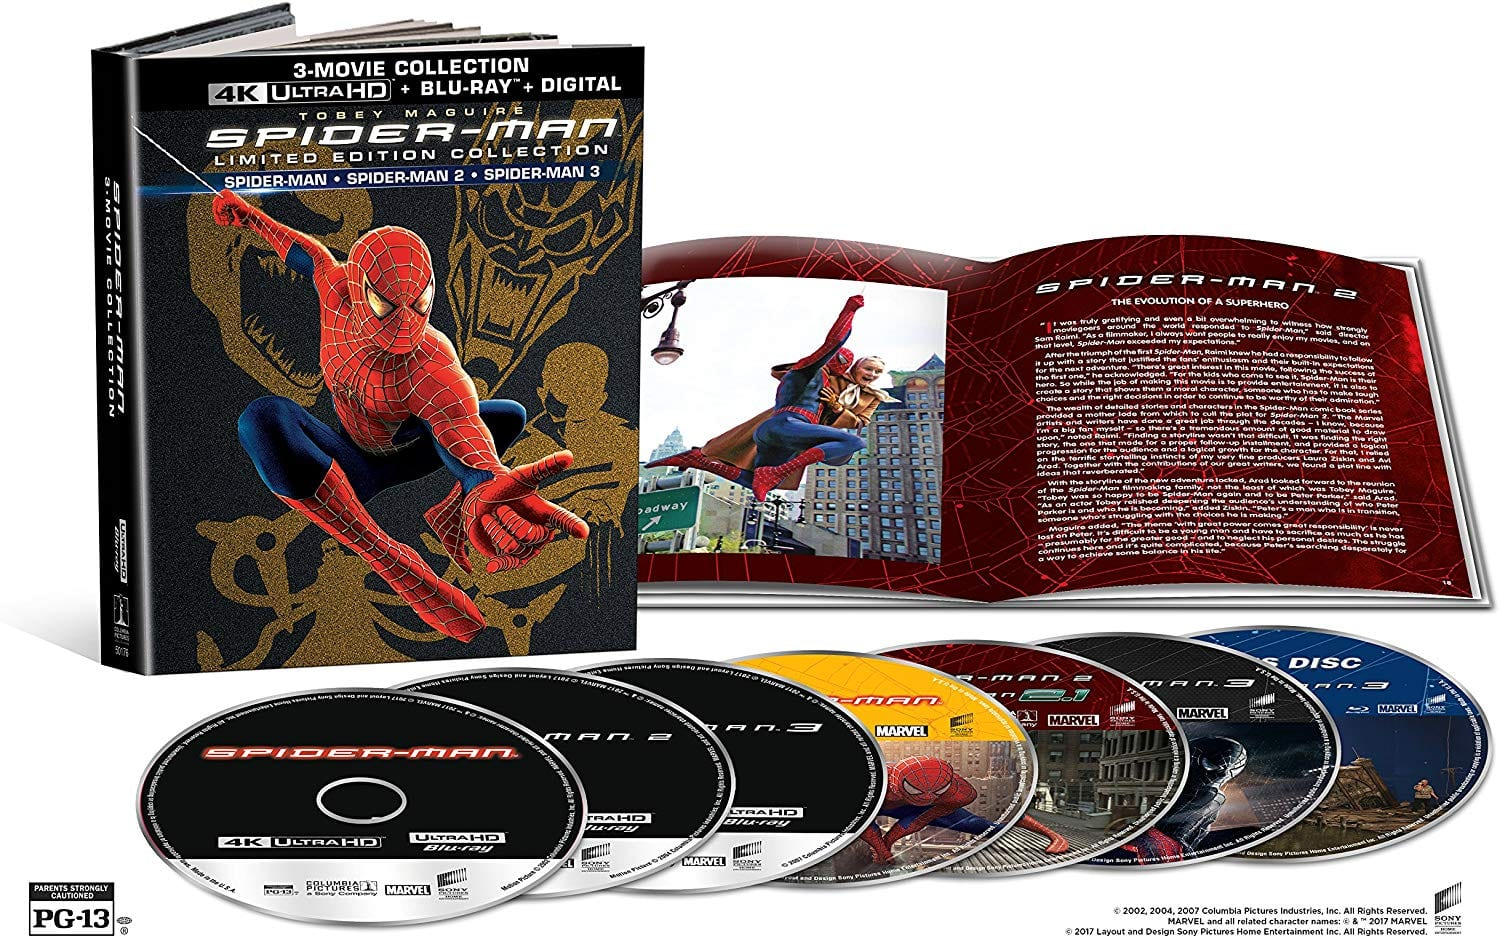 Spiderman Original Trilogy 4K Set $37.47